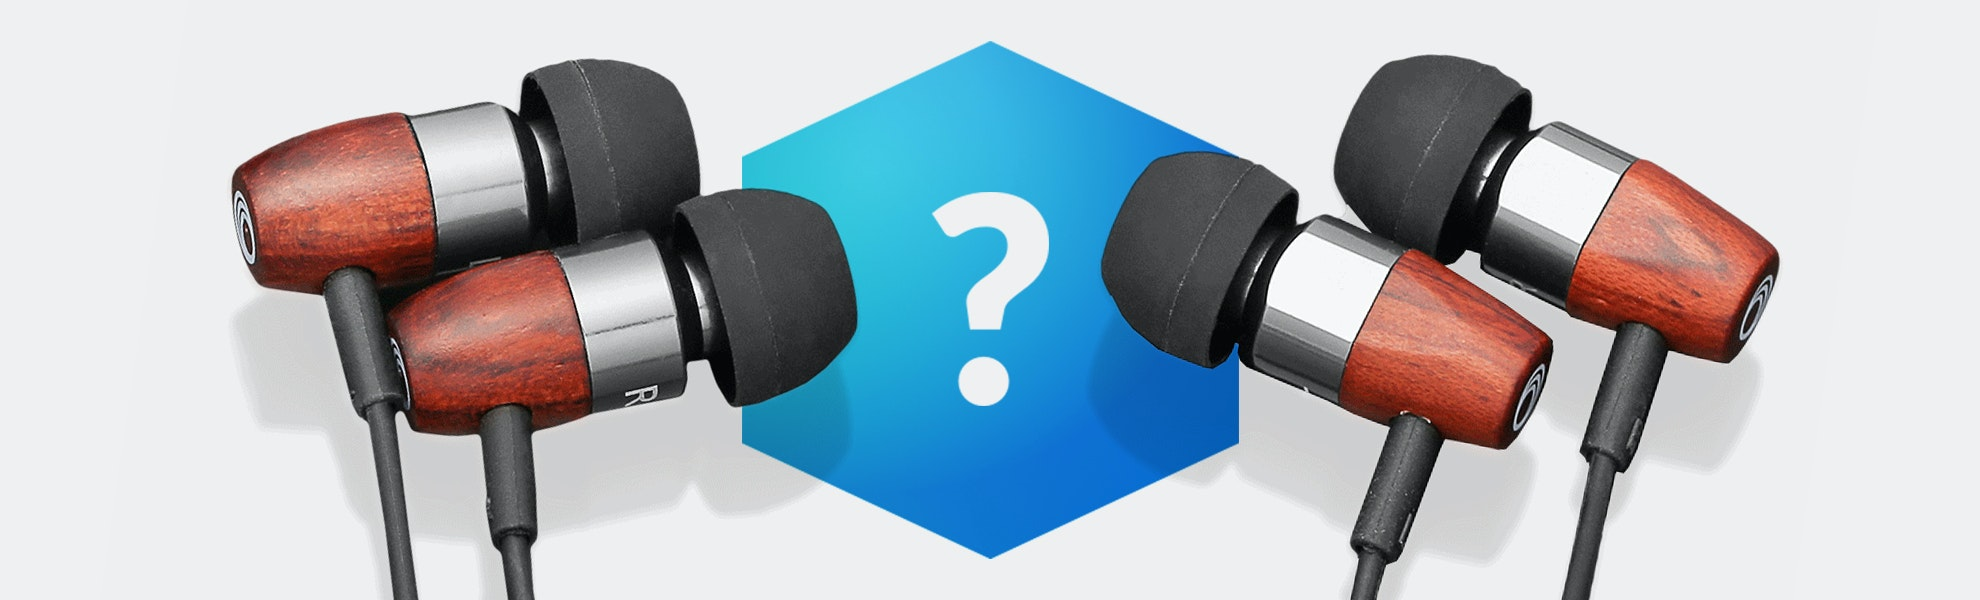 Massdrop Blue Box: Thinksound